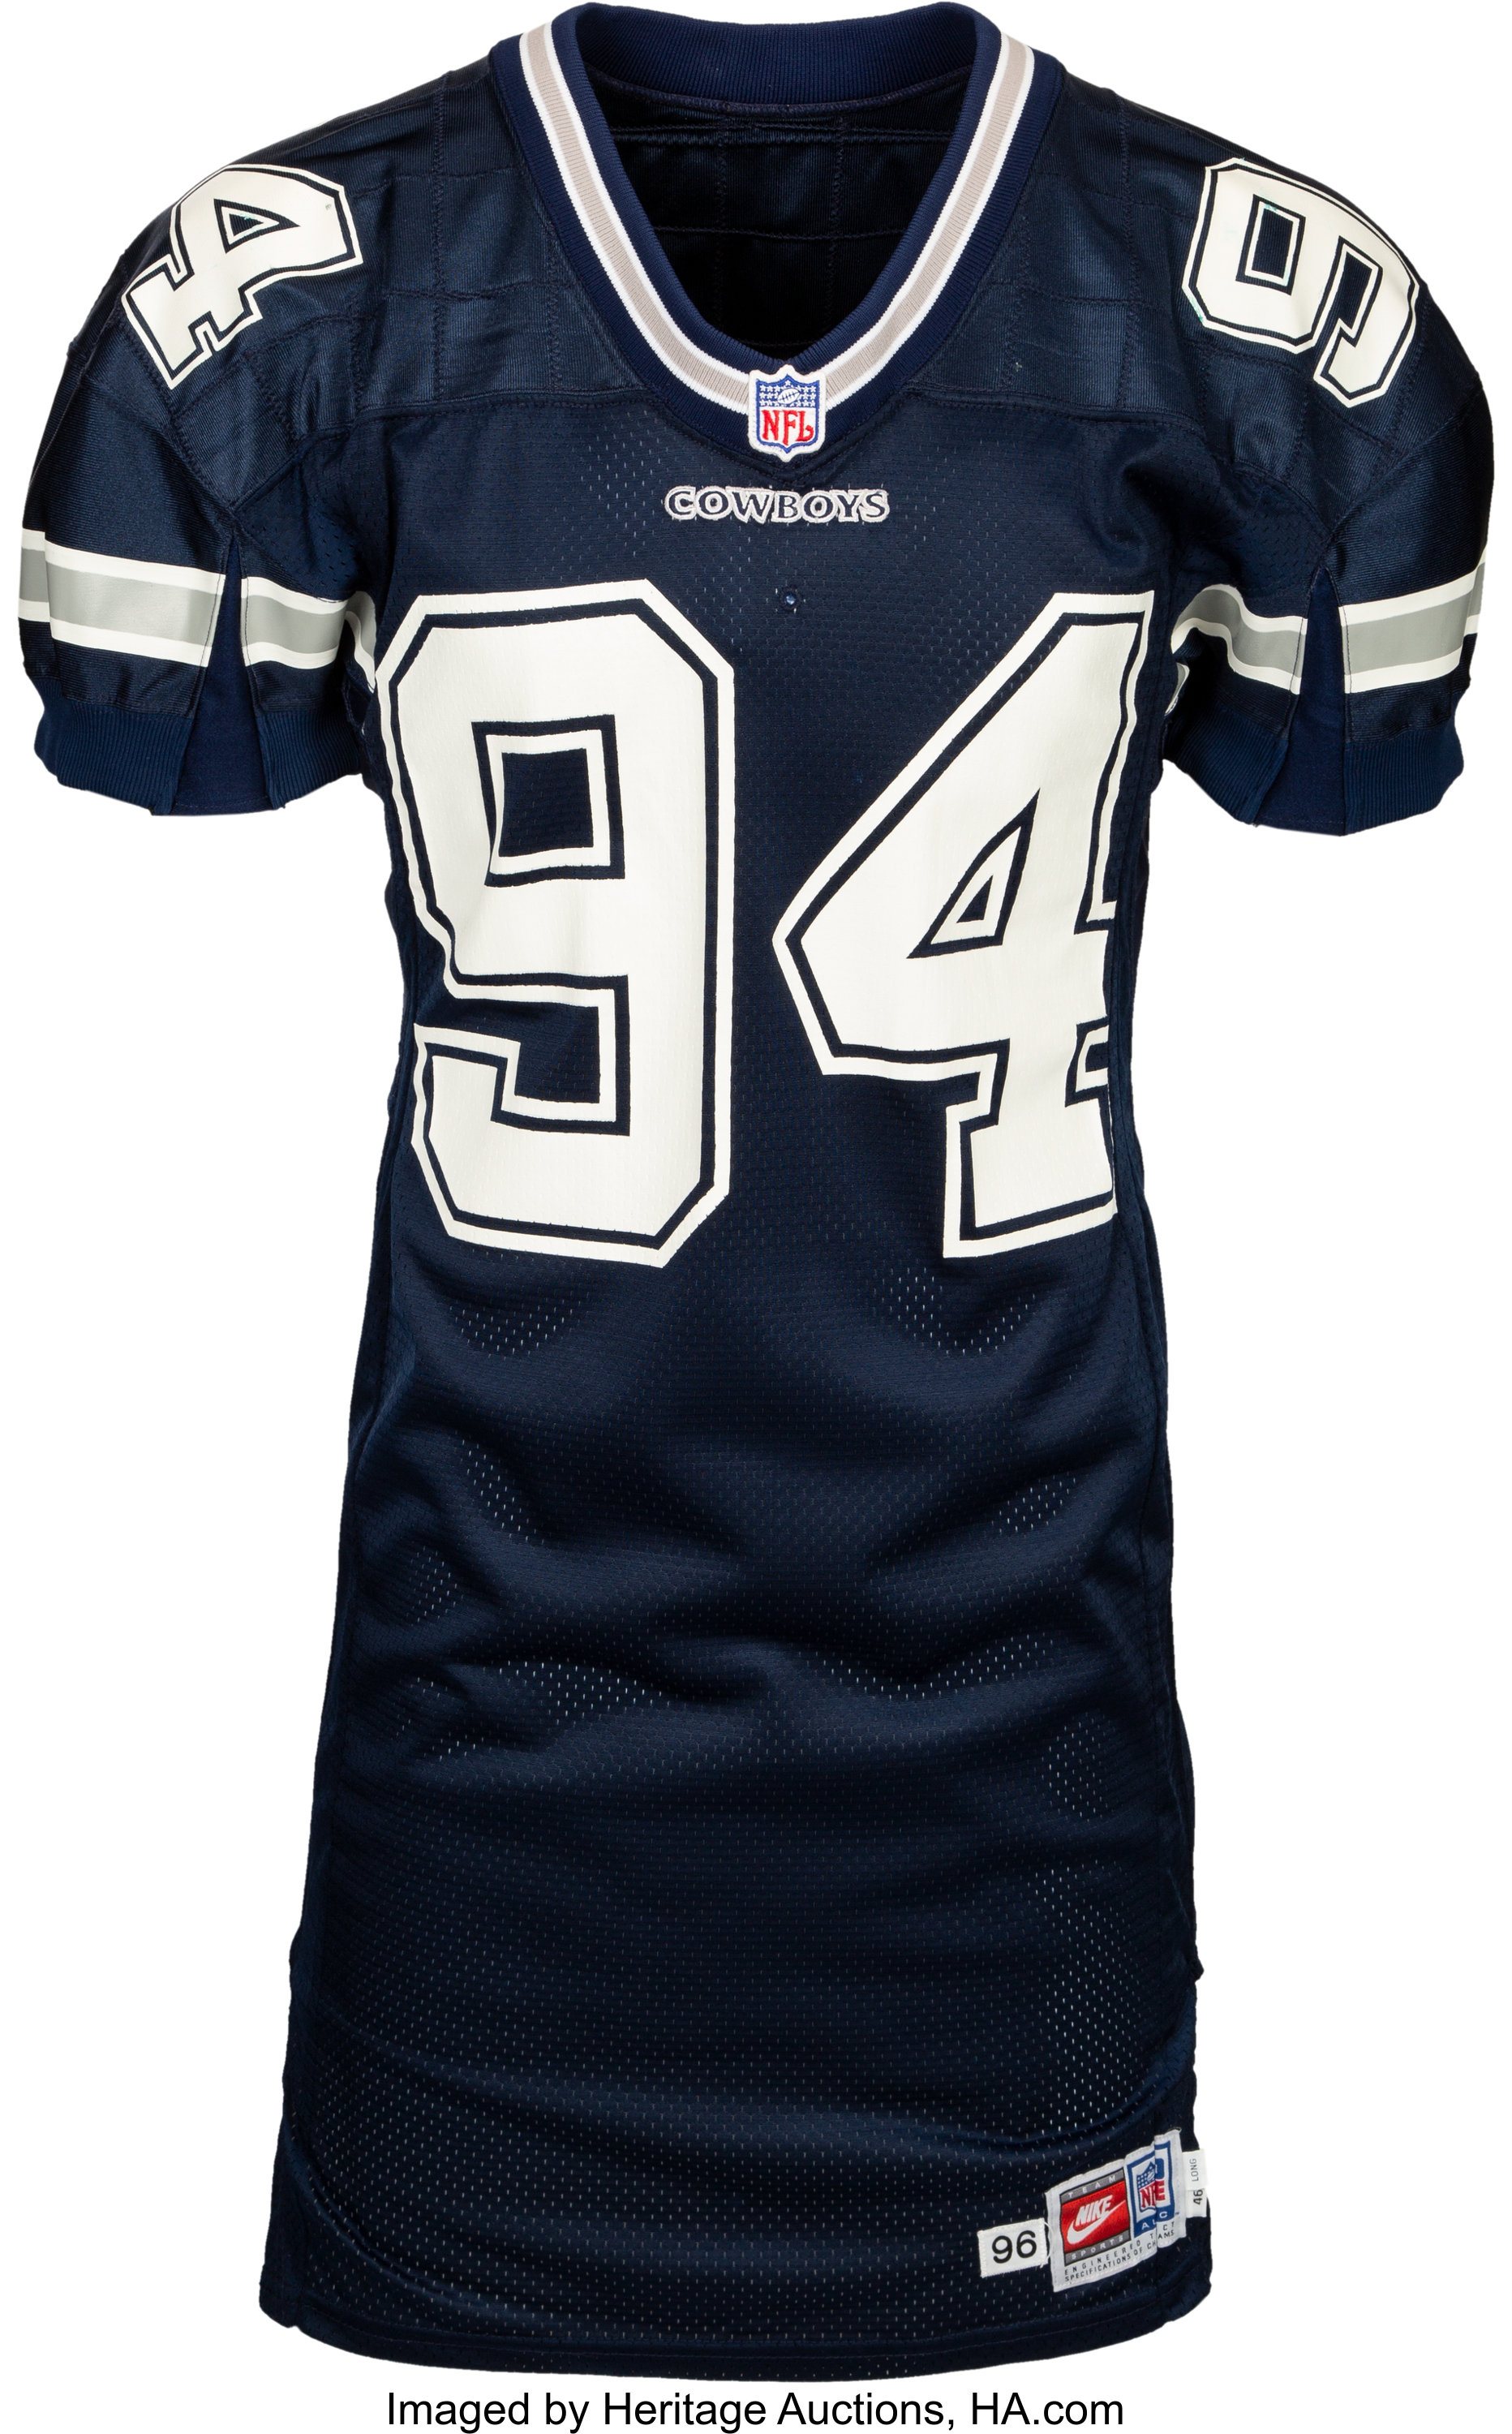 check out c378c 469f4 1996 Charles Haley Game Worn Dallas Cowboys Jersey - Used 10/27 vs. | Lot  #56593 | Heritage Auctions